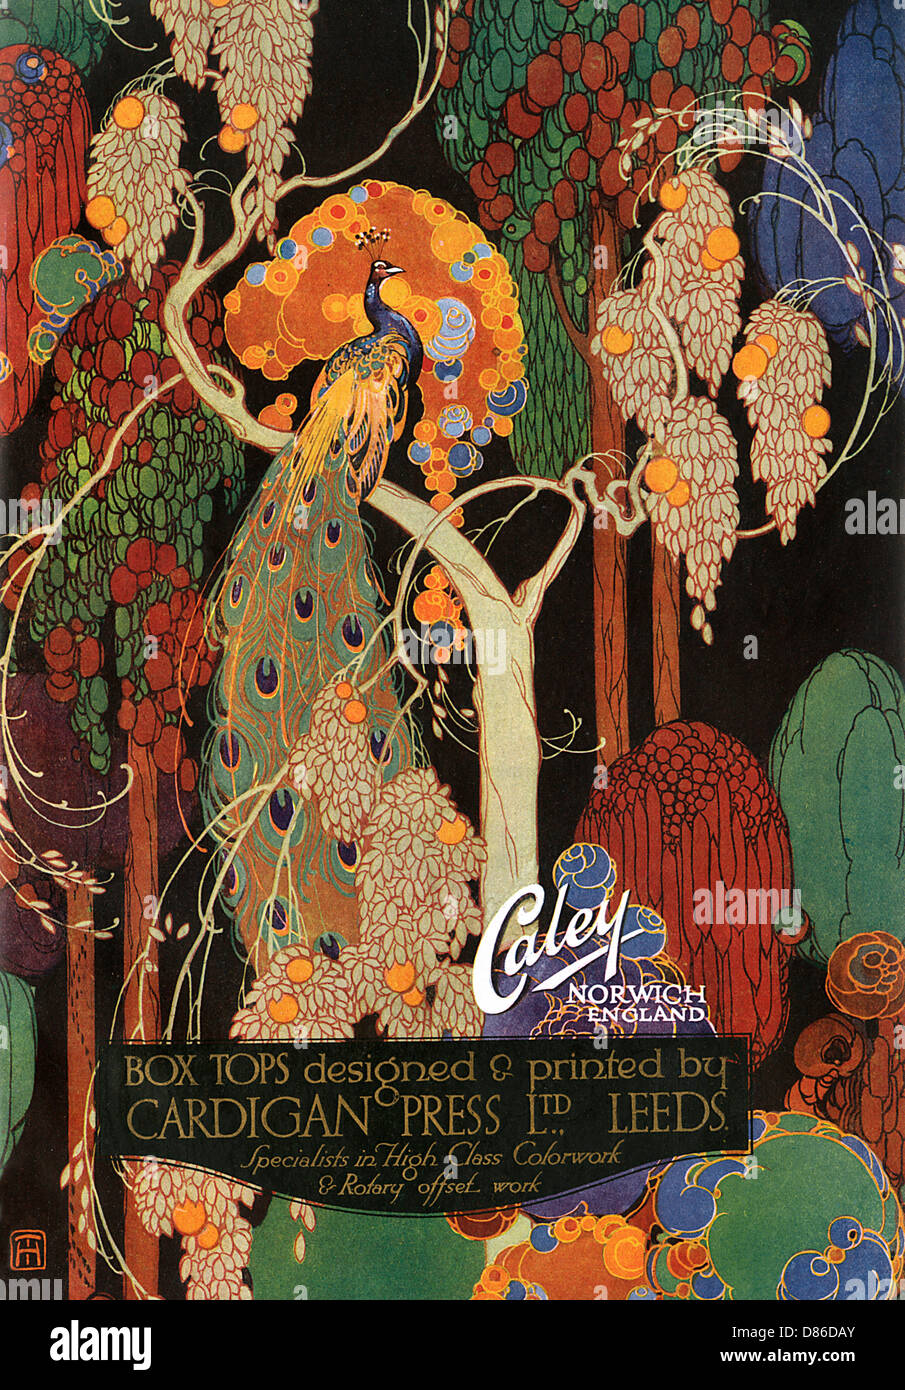 A Colourful Artwork Promoting A. J. Caley Limited. - Stock Image